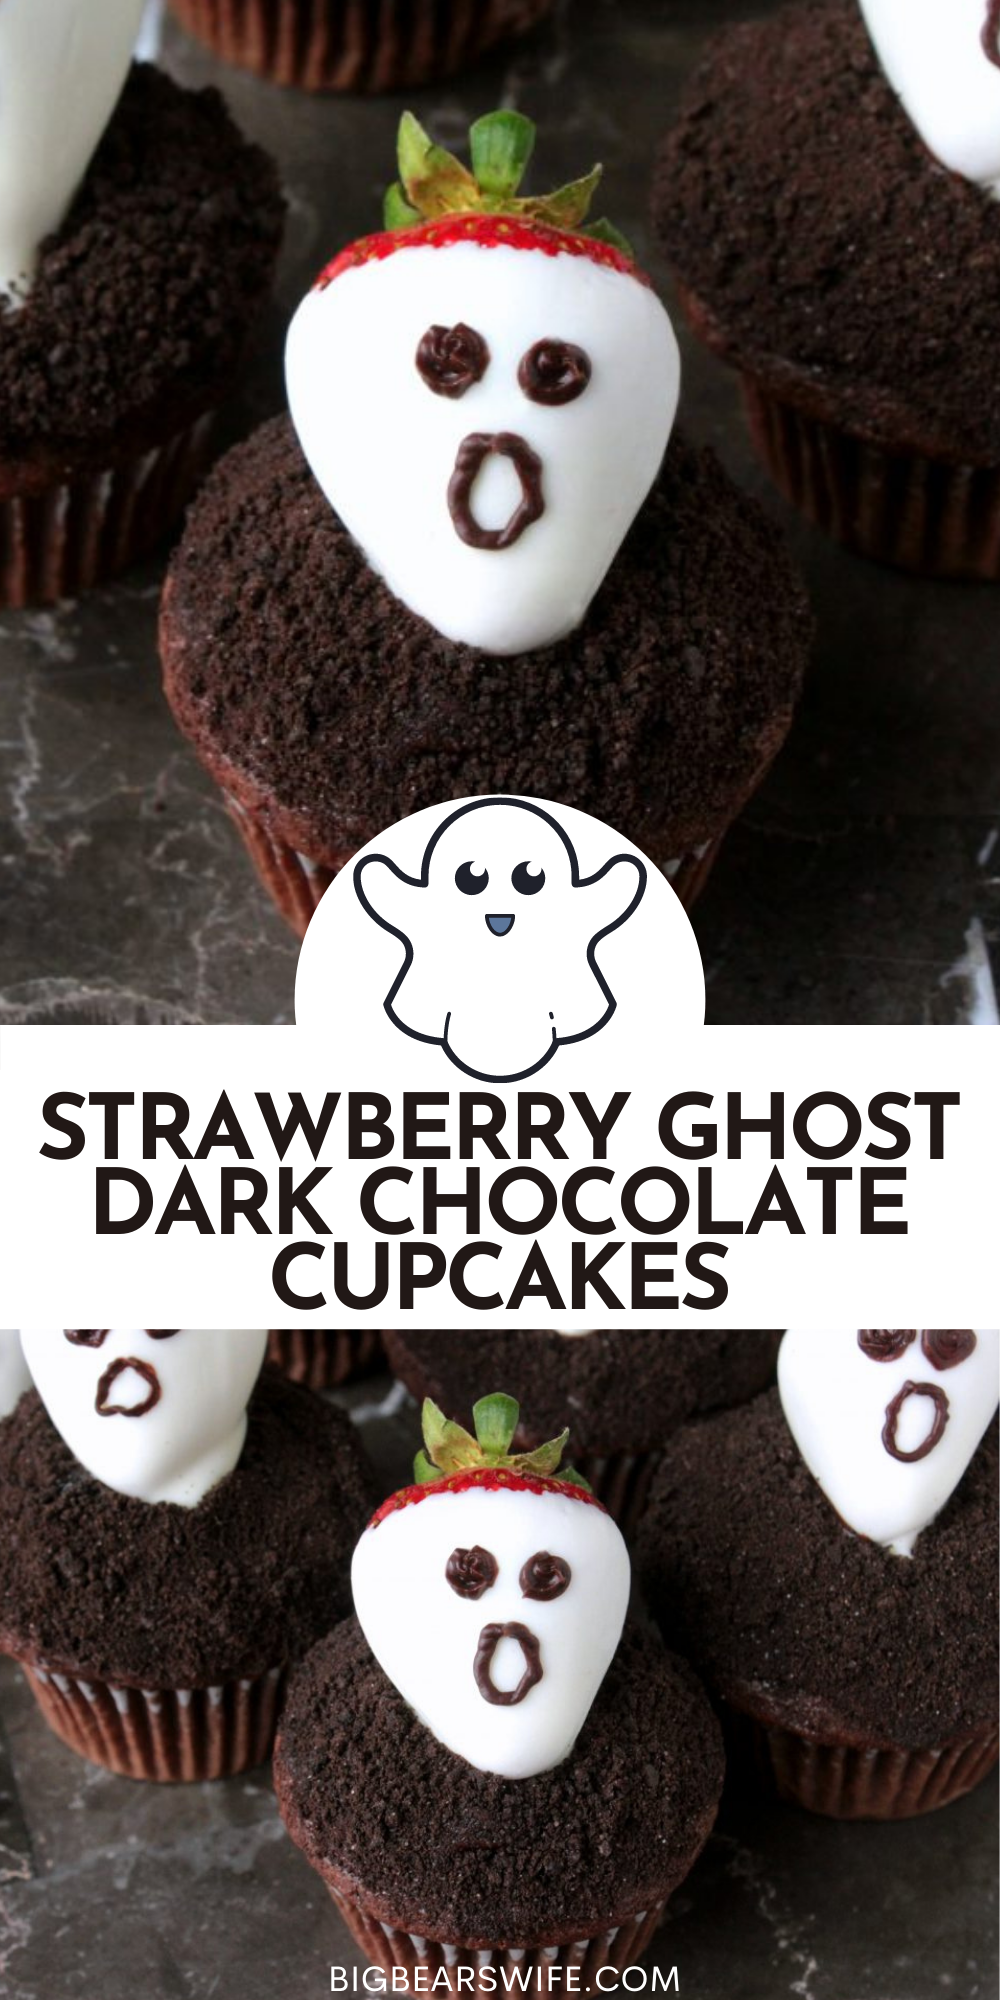 Don't get spooked! These Strawberry Ghost Dark Chocolate Cupcakes are nothing bescaredabout! They're a sweet and easy dessert that's perfect for Halloween!